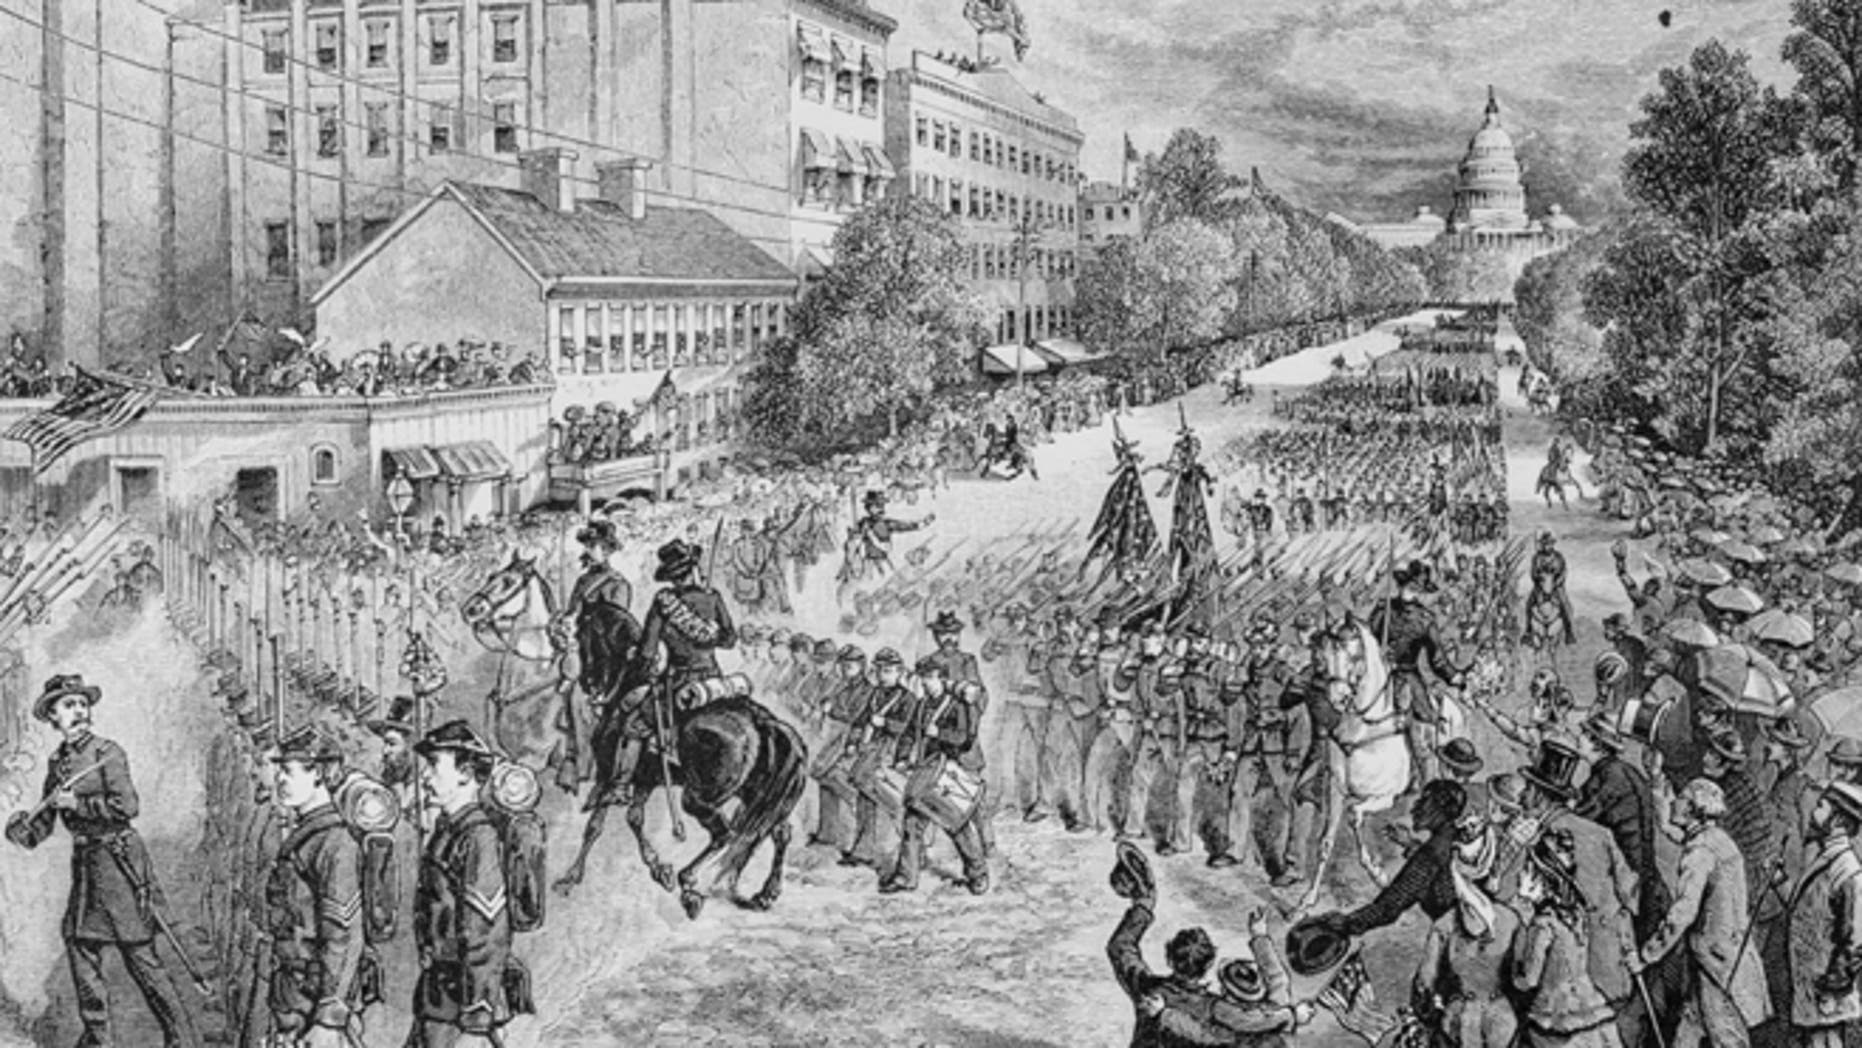 circa 1865:  The Union Army being disbanded at the end of the American Civil War.  (Photo by Hulton Archive/Getty Images)